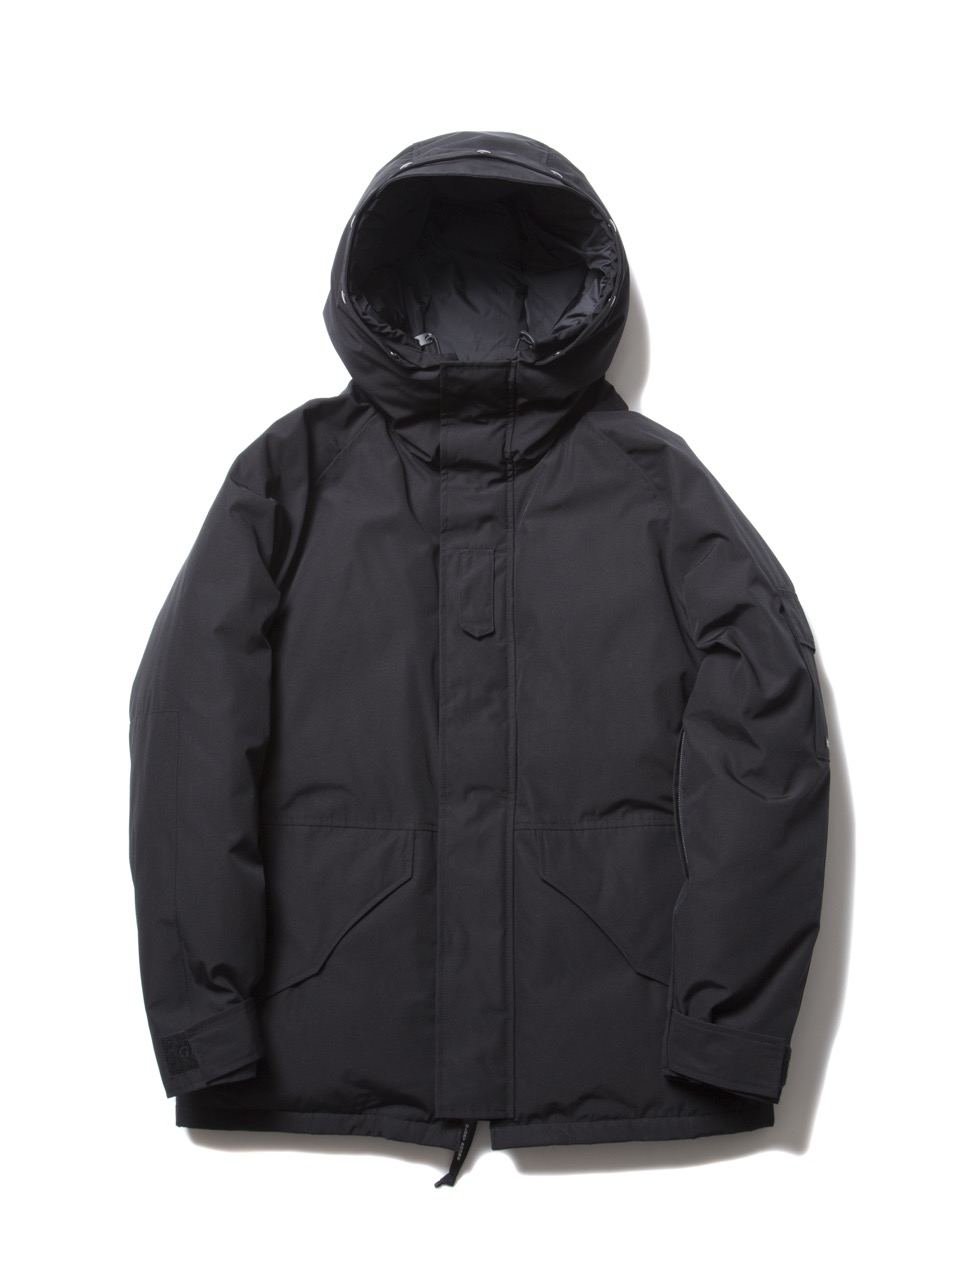 COOTIE T/C Weather Cloth Down Jacket